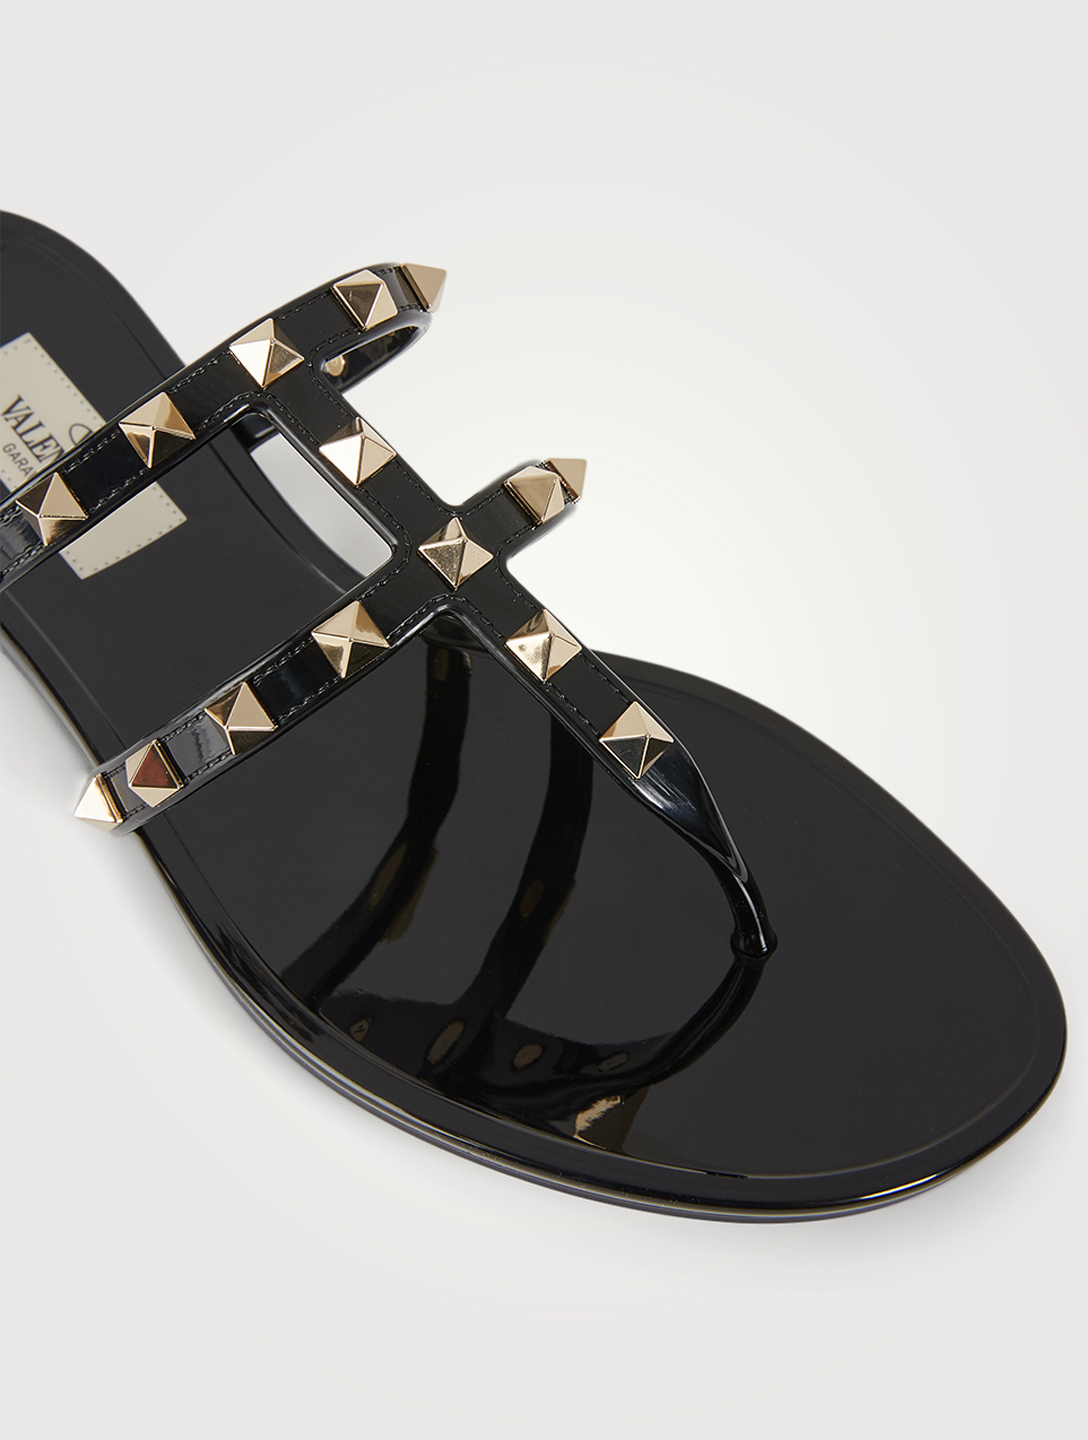 VALENTINO GARAVANI Rockstud Rubber Thong Sandals Women's Black